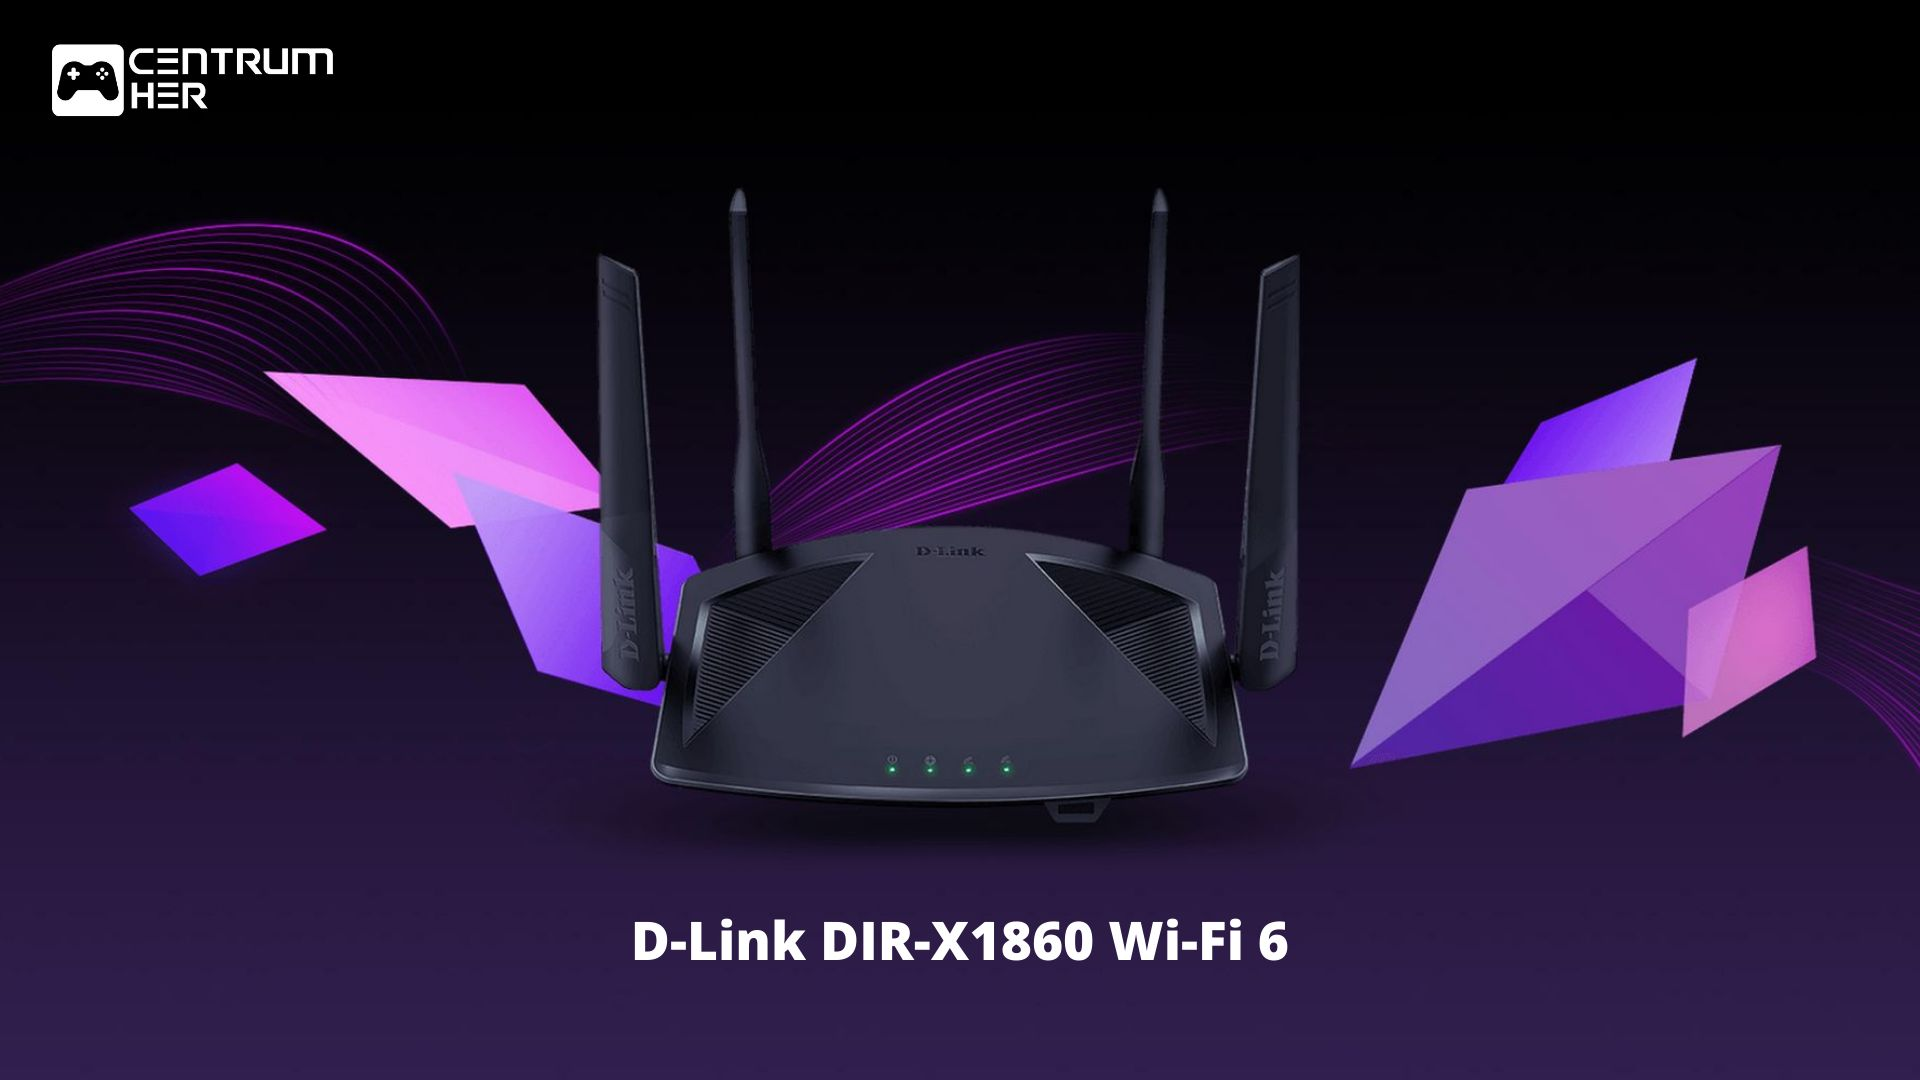 D-Link DIR-X1860 Test WiFi Router